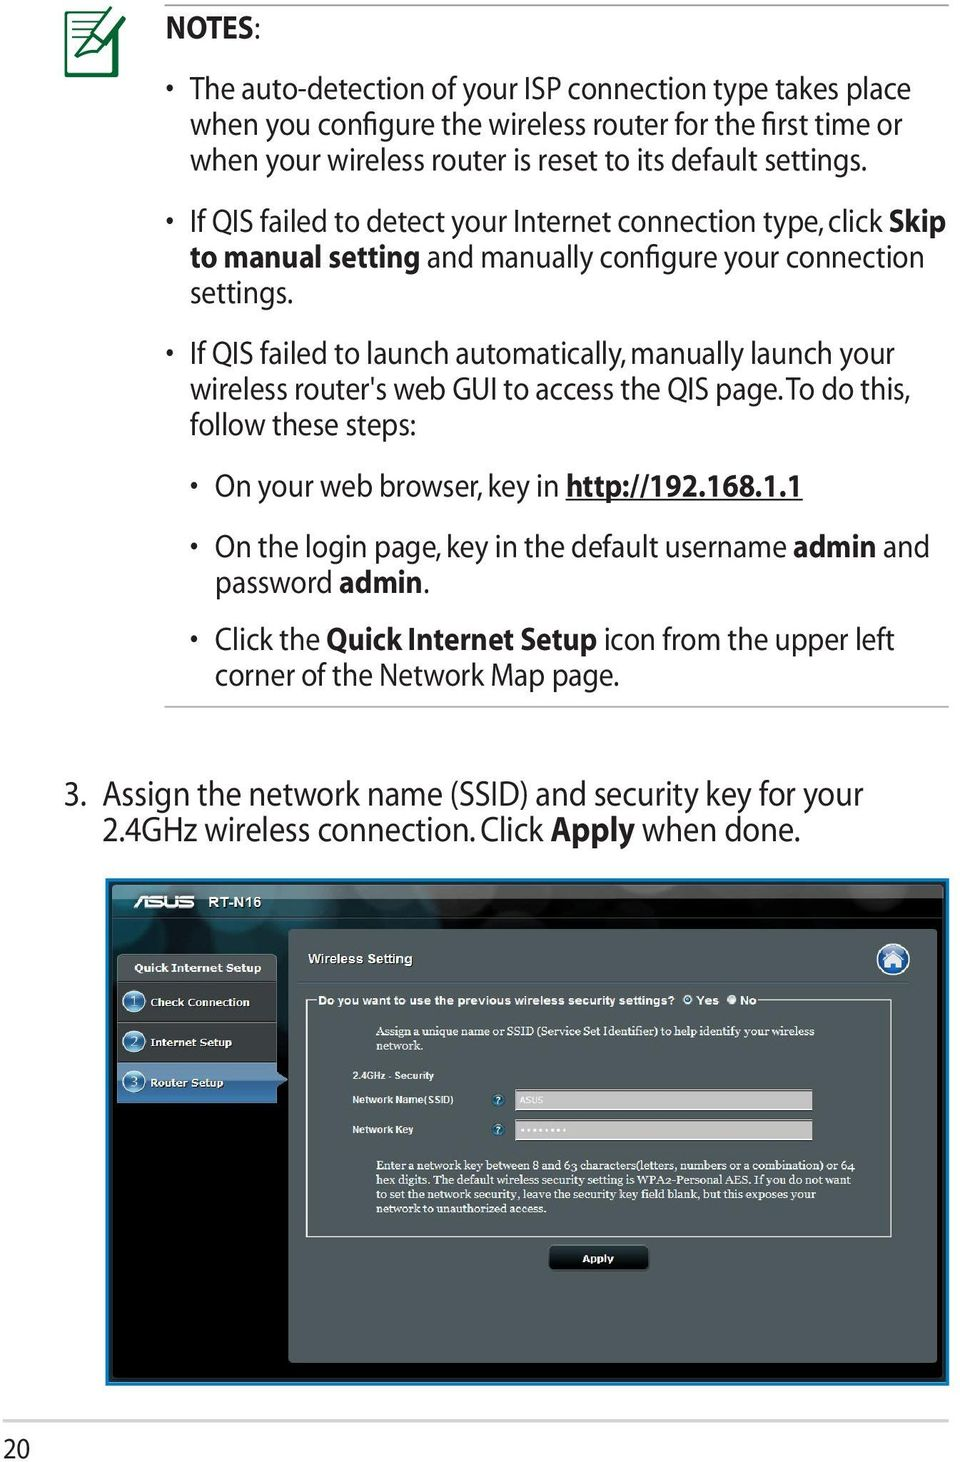 If QIS failed to launch automatically, manually launch your wireless router's web GUI to access the QIS page. To do this, follow these steps: On your web browser, key in http://19